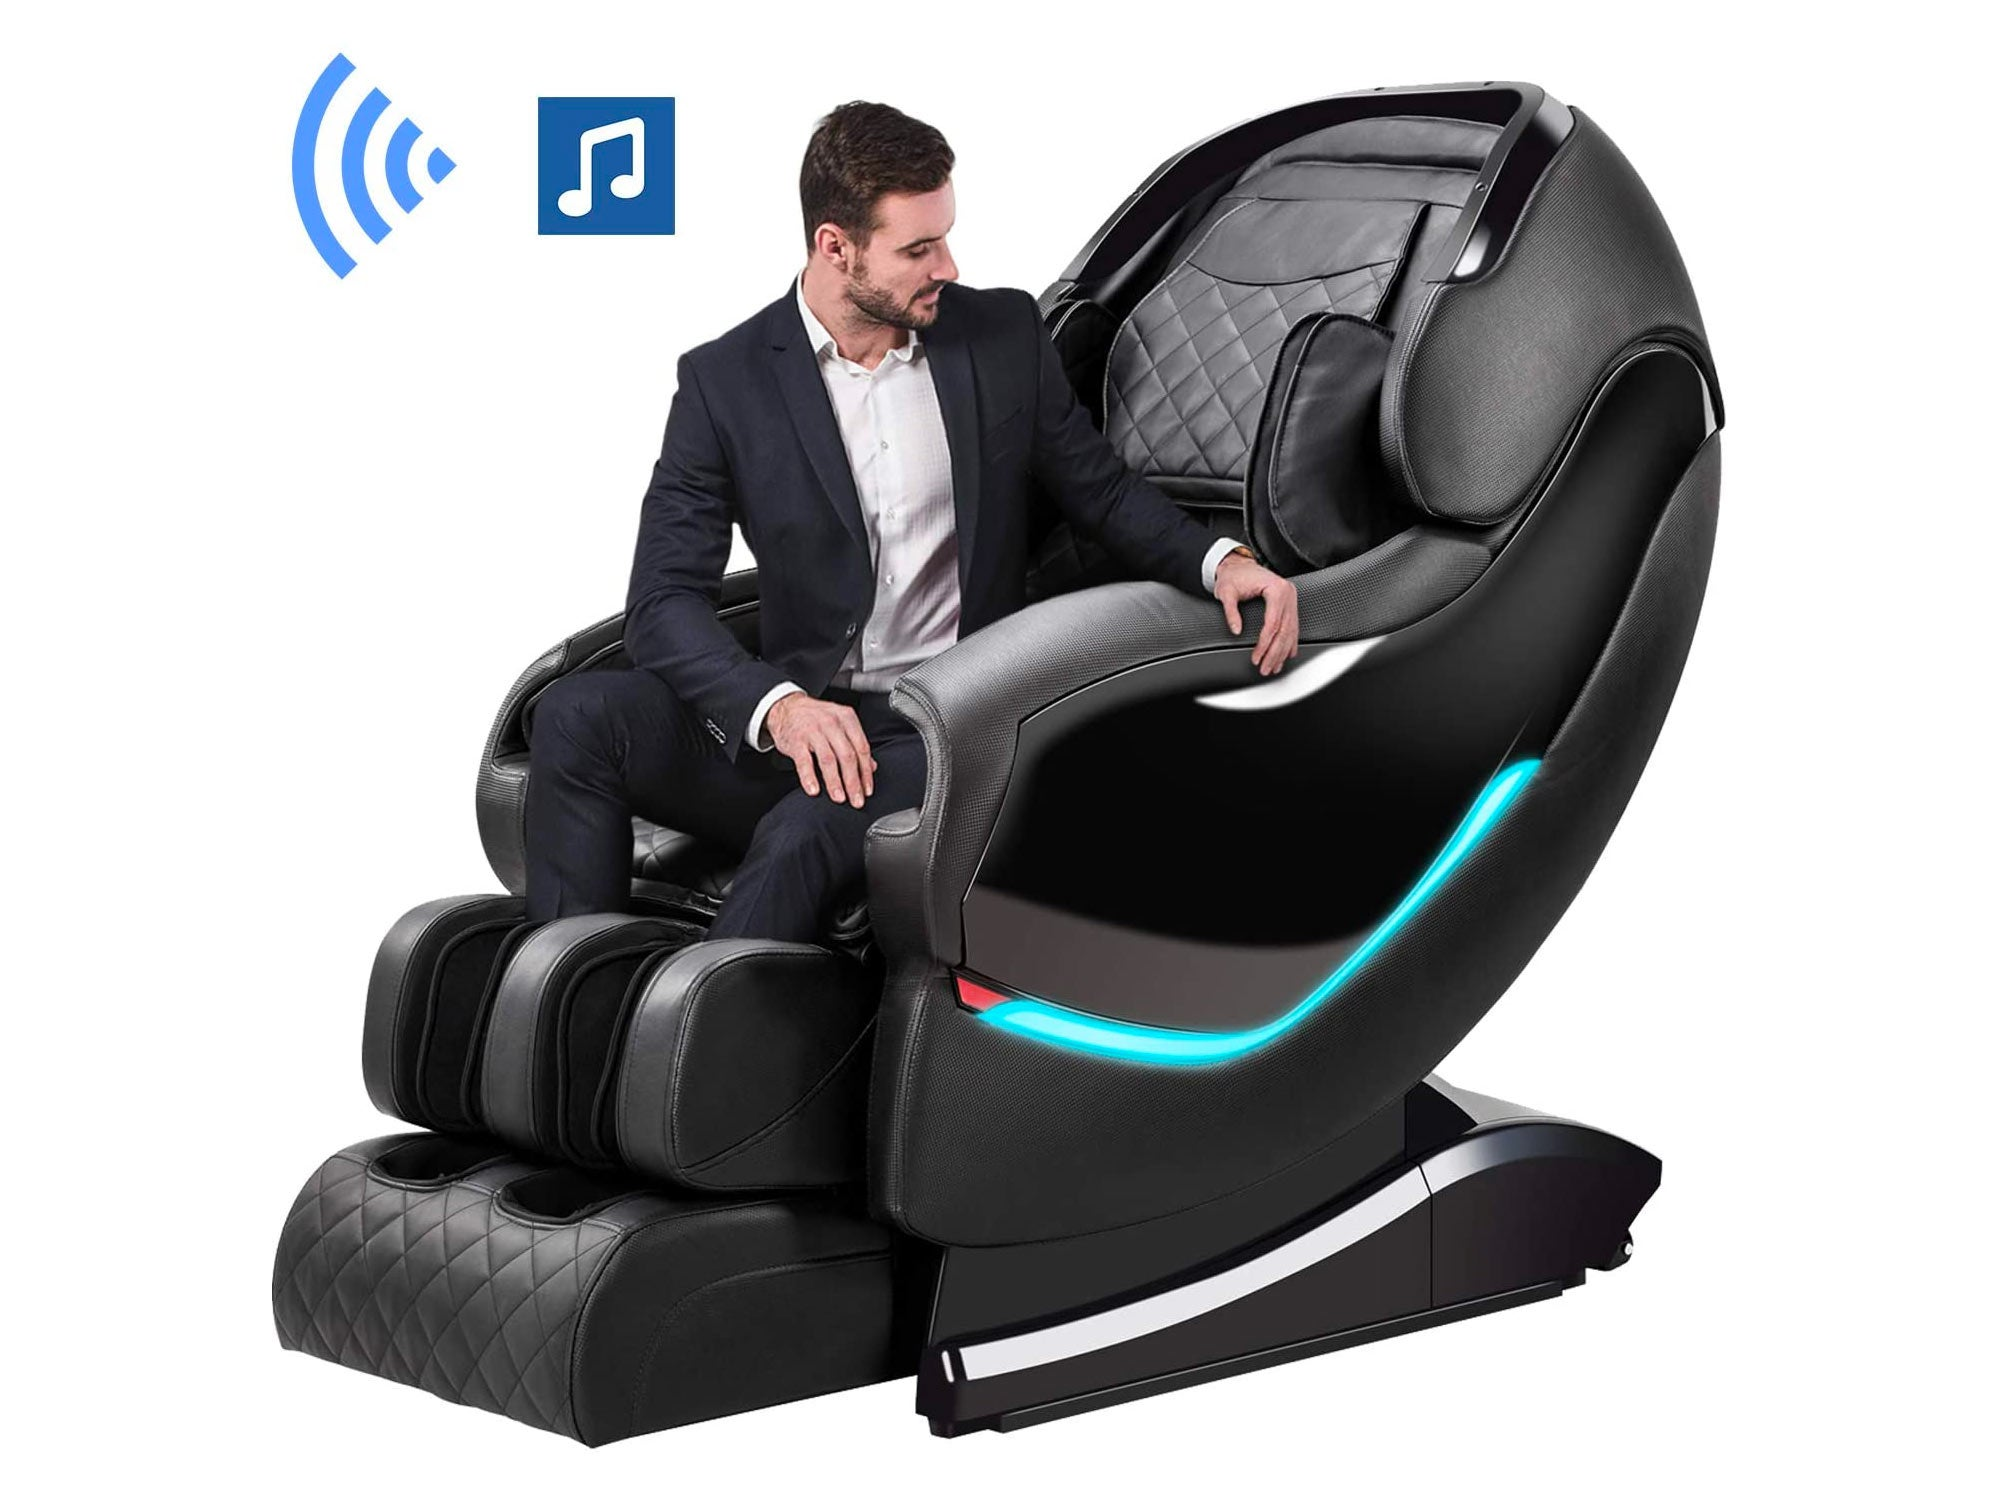 OOTORI Cyber Monday Deals 2020 New Massage Chair, Zero Gravity & Shiatsu Function Chair, Full Body Massage Recliner with Lower-Back Heating / Foot Roller